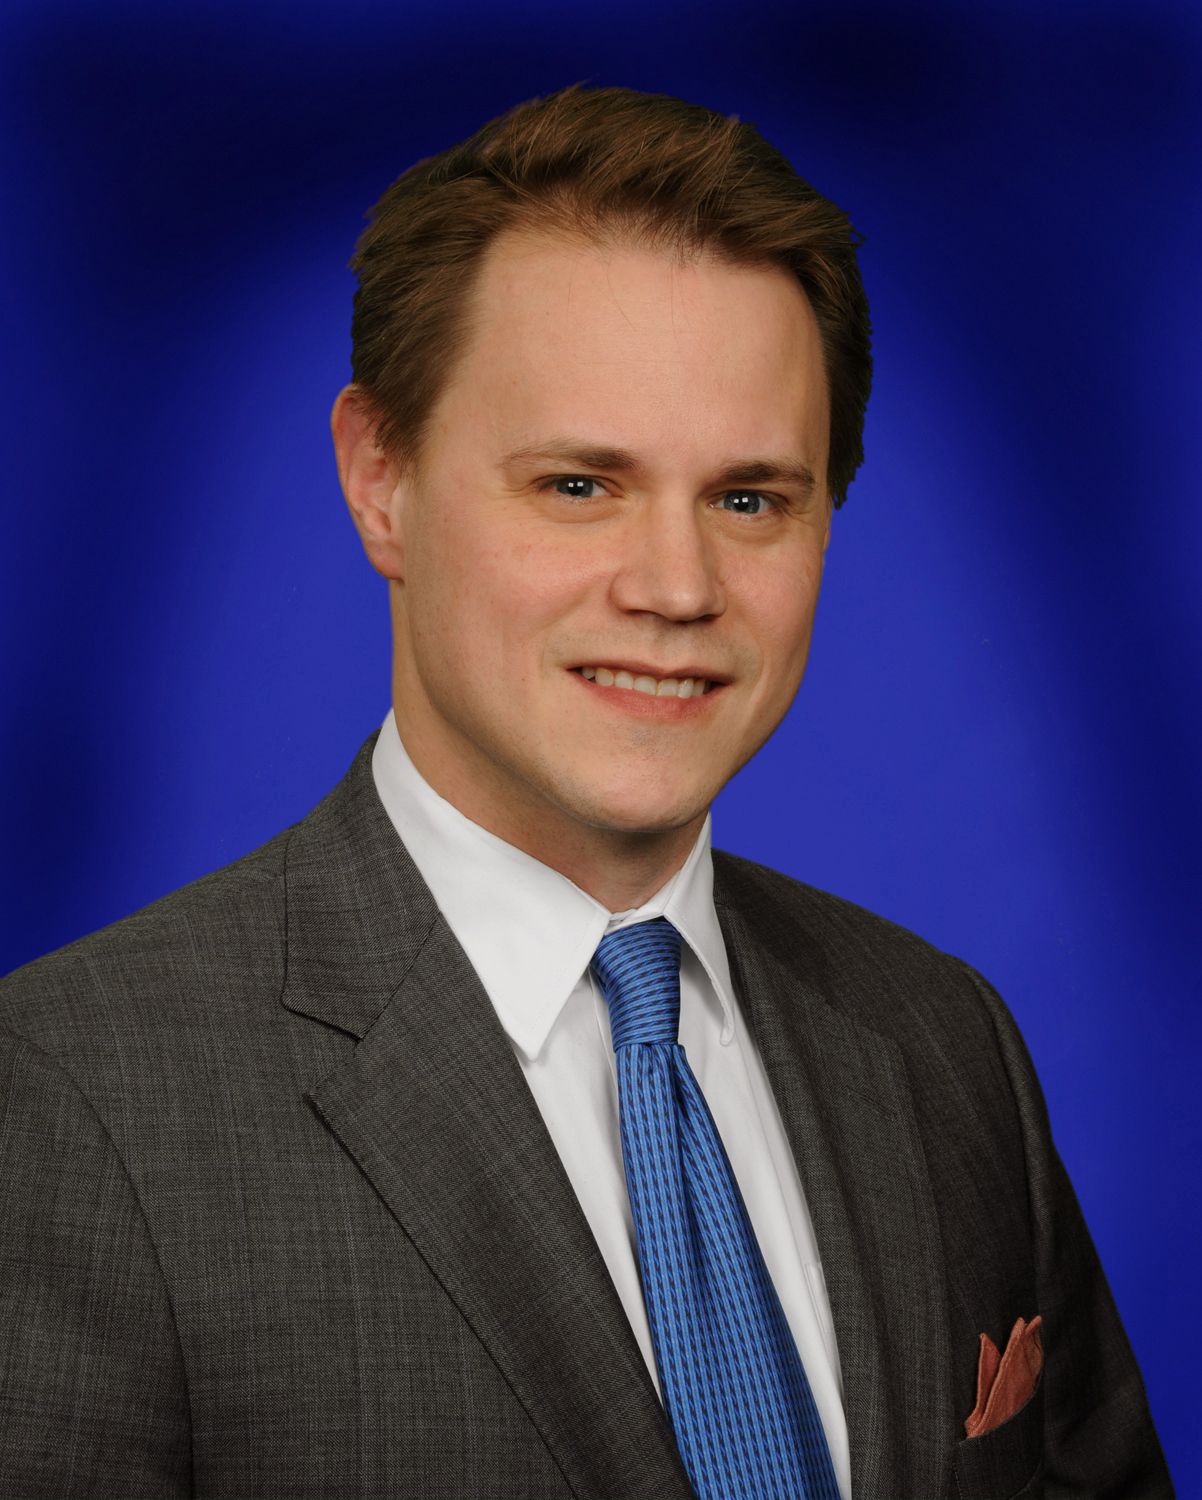 Counsel at Fultz Maddox Dickens PLC - I'm a Kentucky-licensed attorney with a national practice focused in health care, regulatory matters and government investigations, and business litigation. I'm also building expertise in litigation technology, including e-discovery and electronic resource coordination.